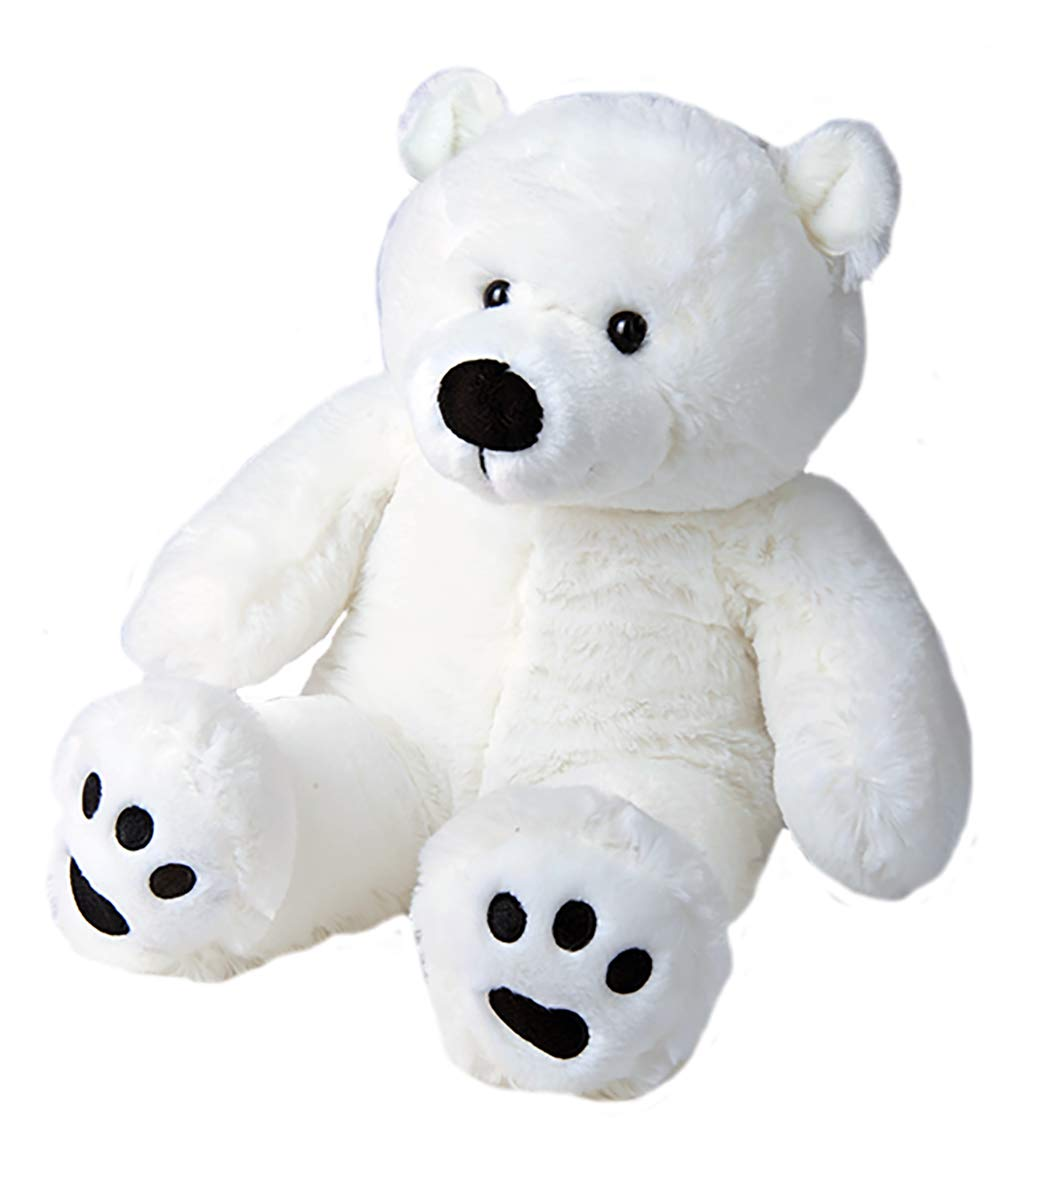 Kit with Cute Backpack No Sew Make Your Own Stuffed Animal Tundra The Polar Bear Stuffems Toy Shop